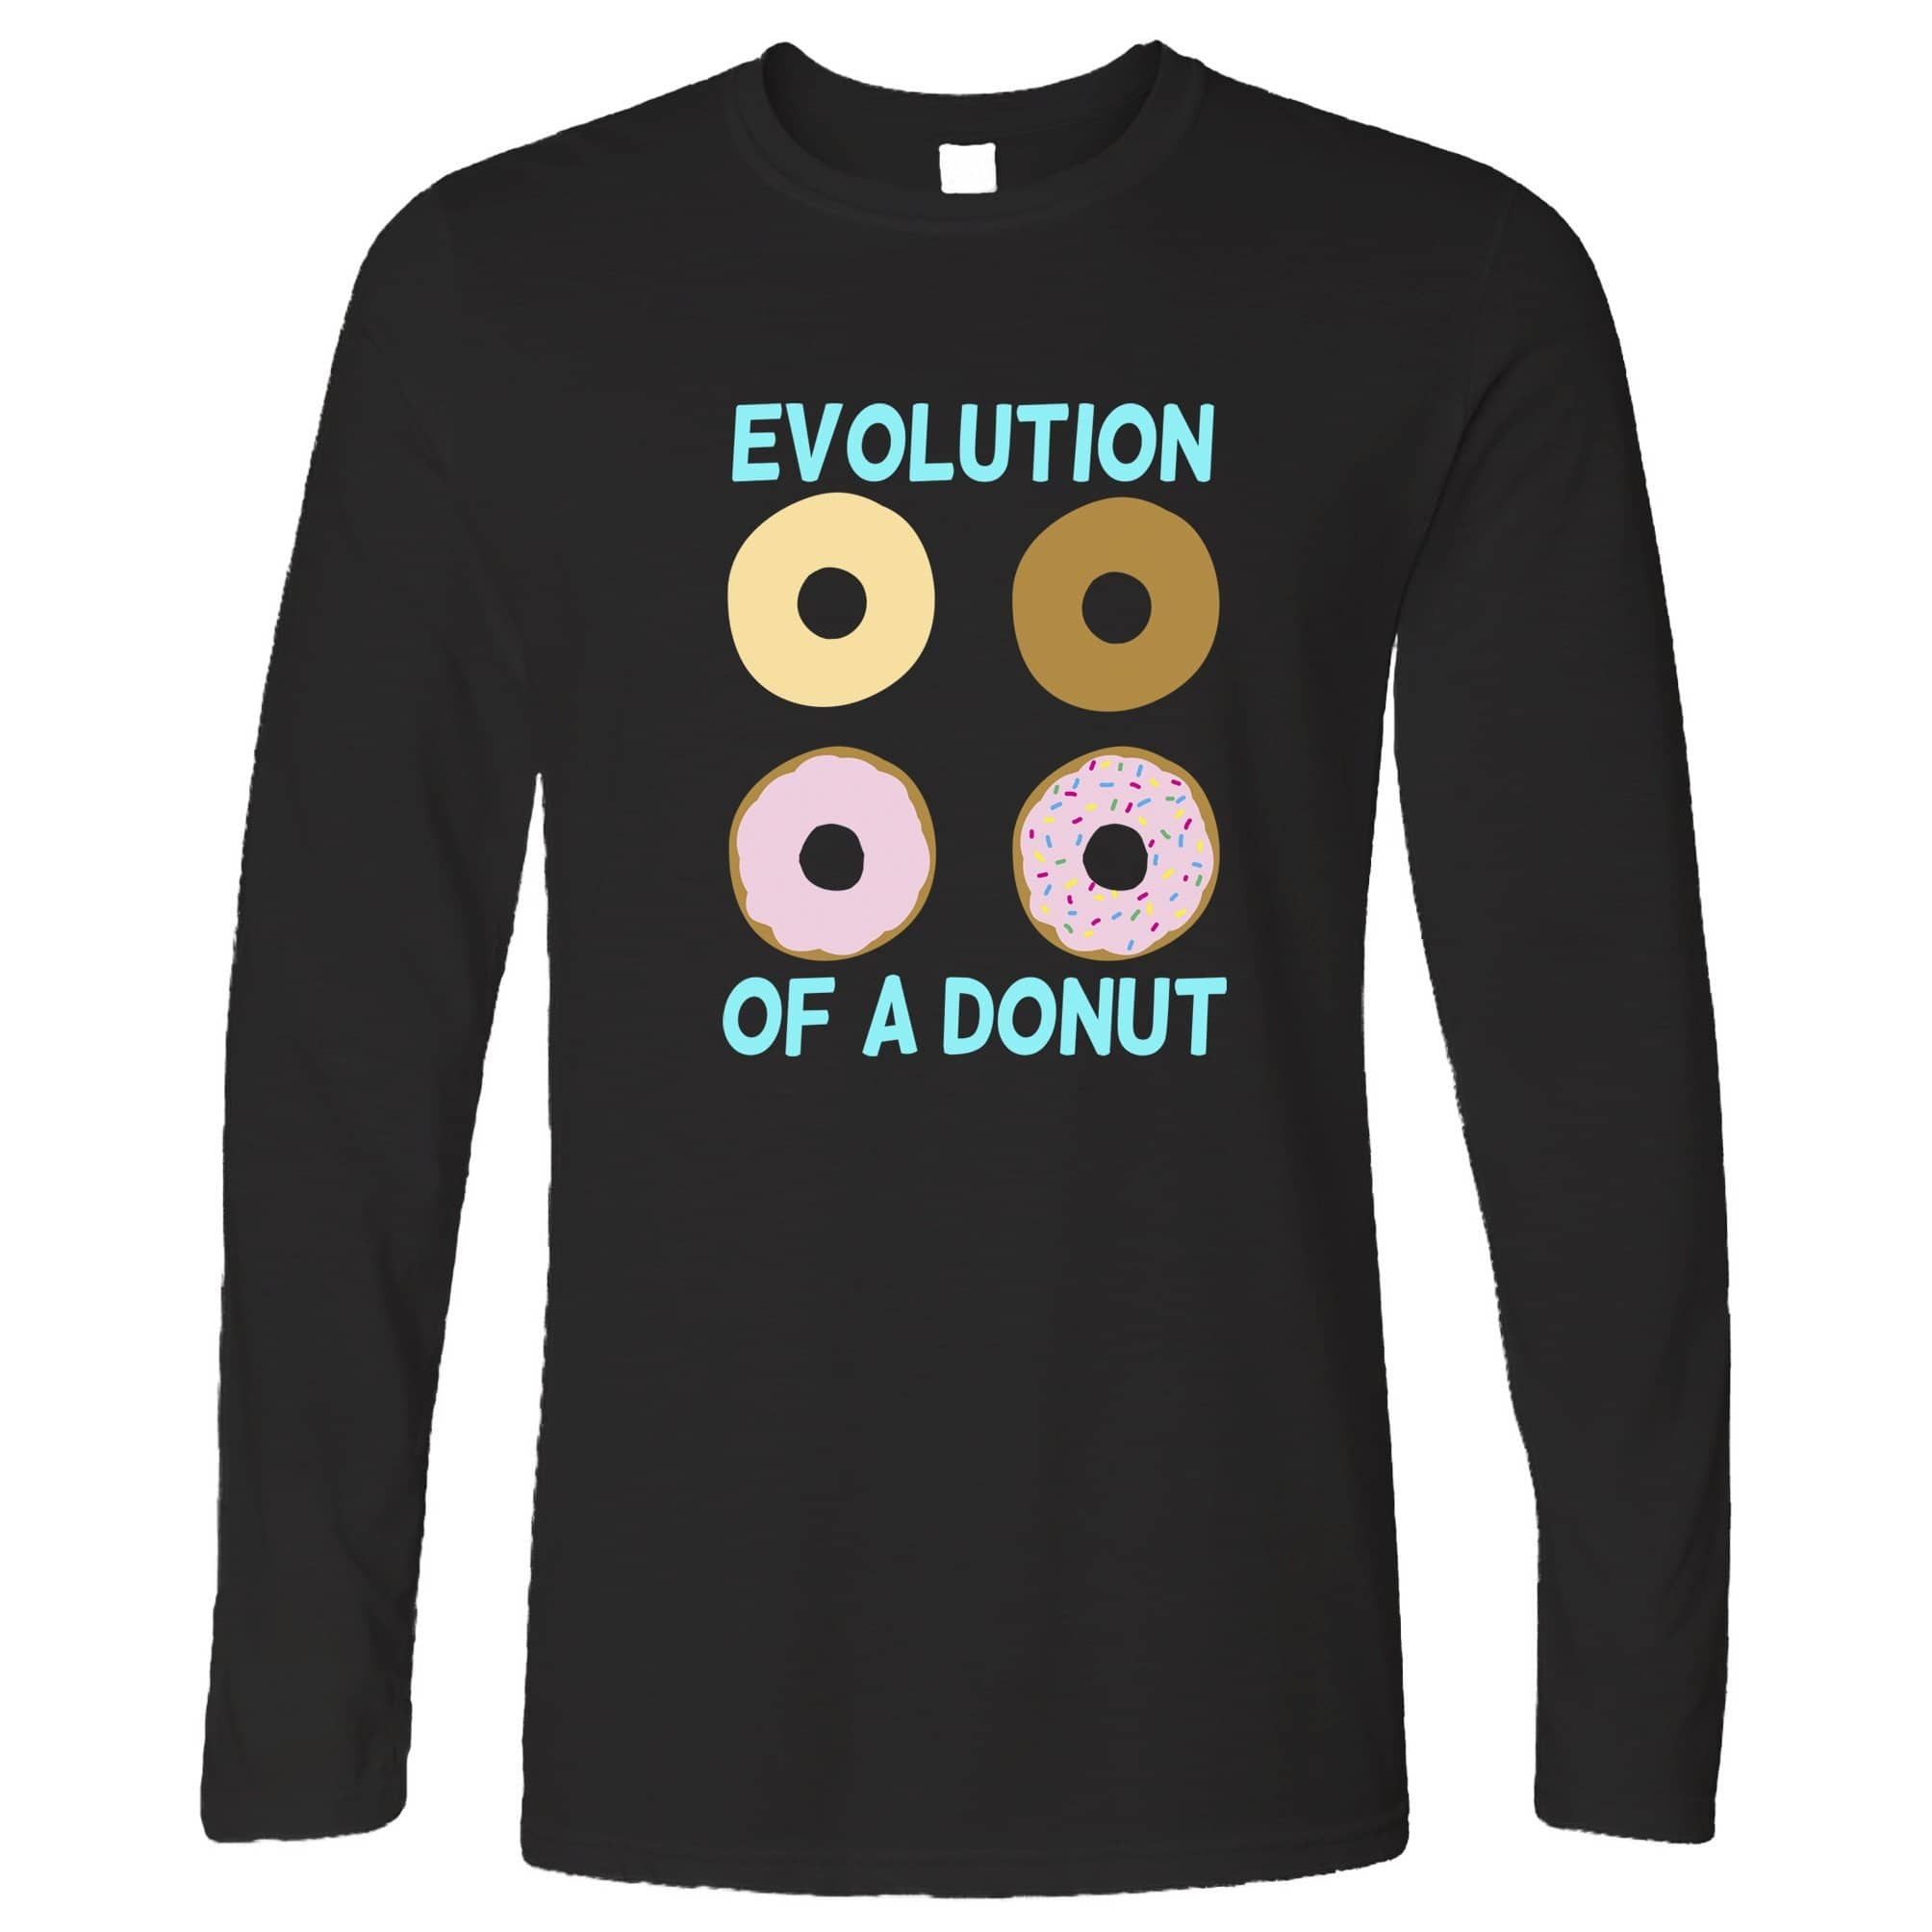 Novelty Food Long Sleeve The Evolution Of A Donut T-Shirt